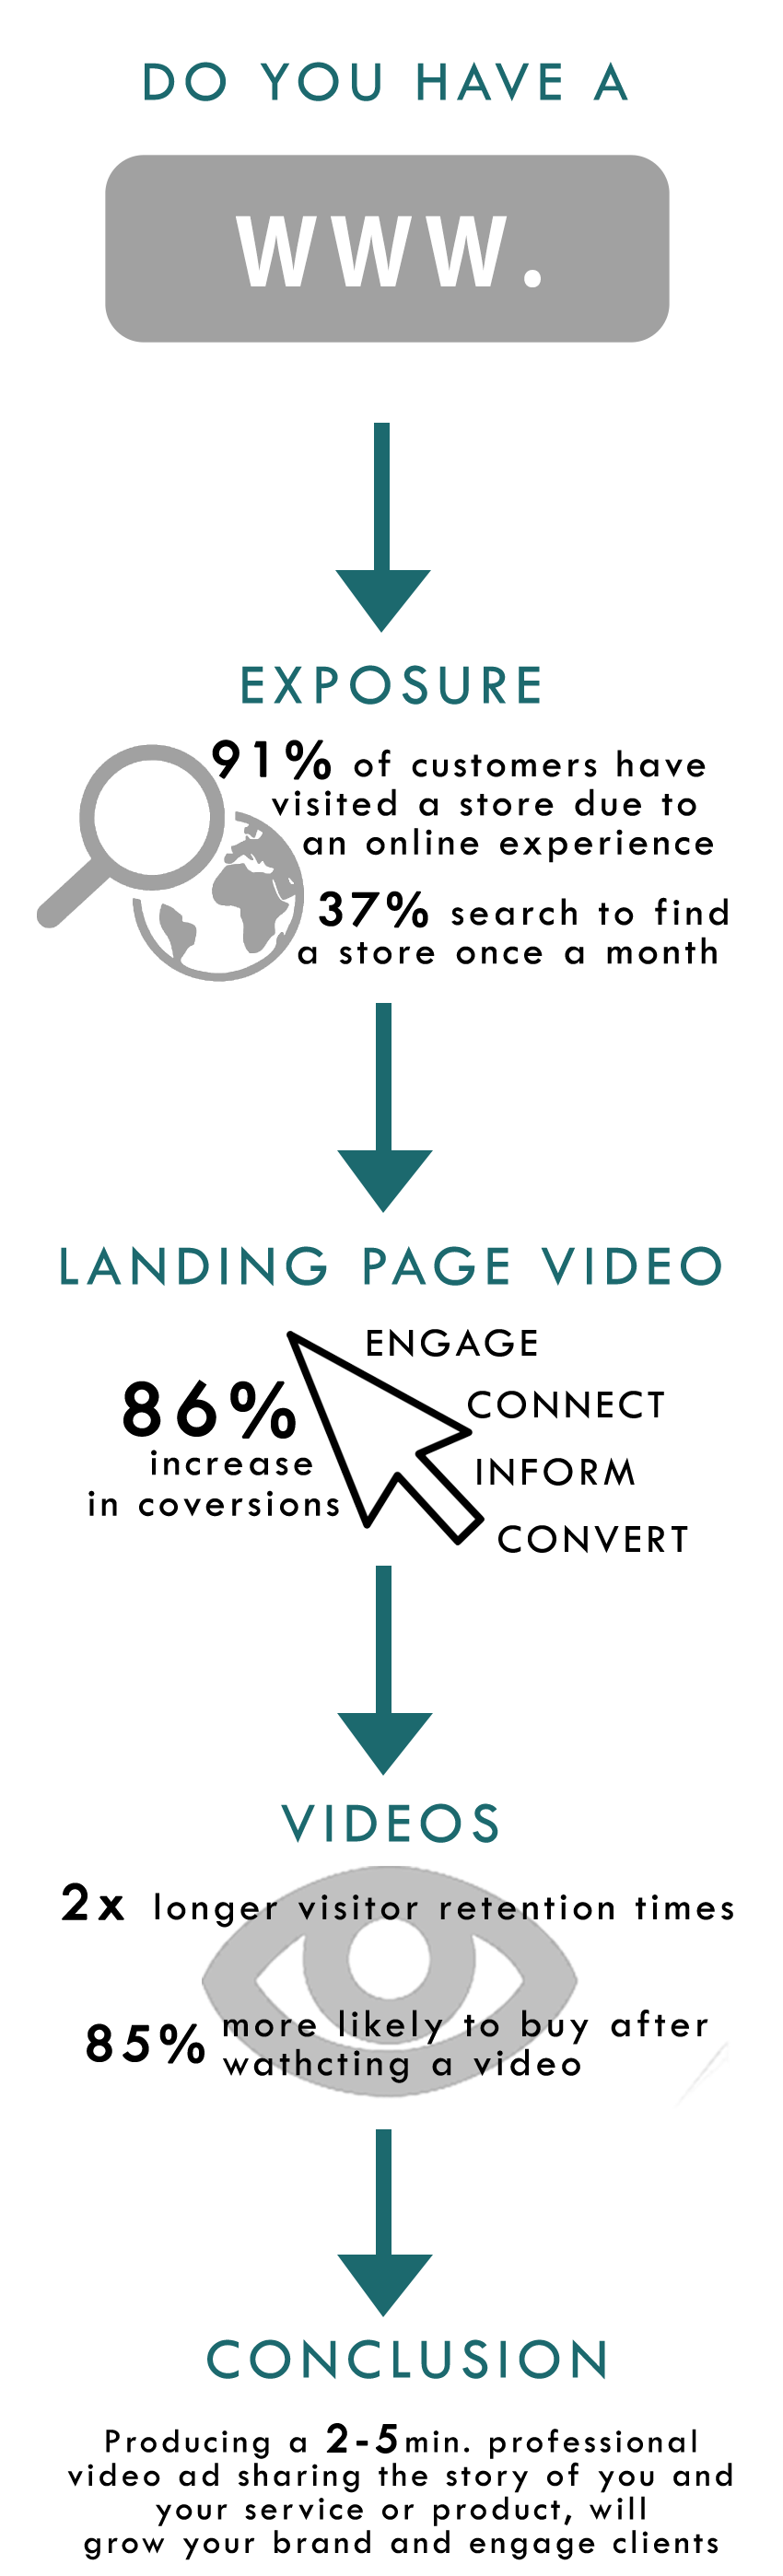 landing Page Video Infographic